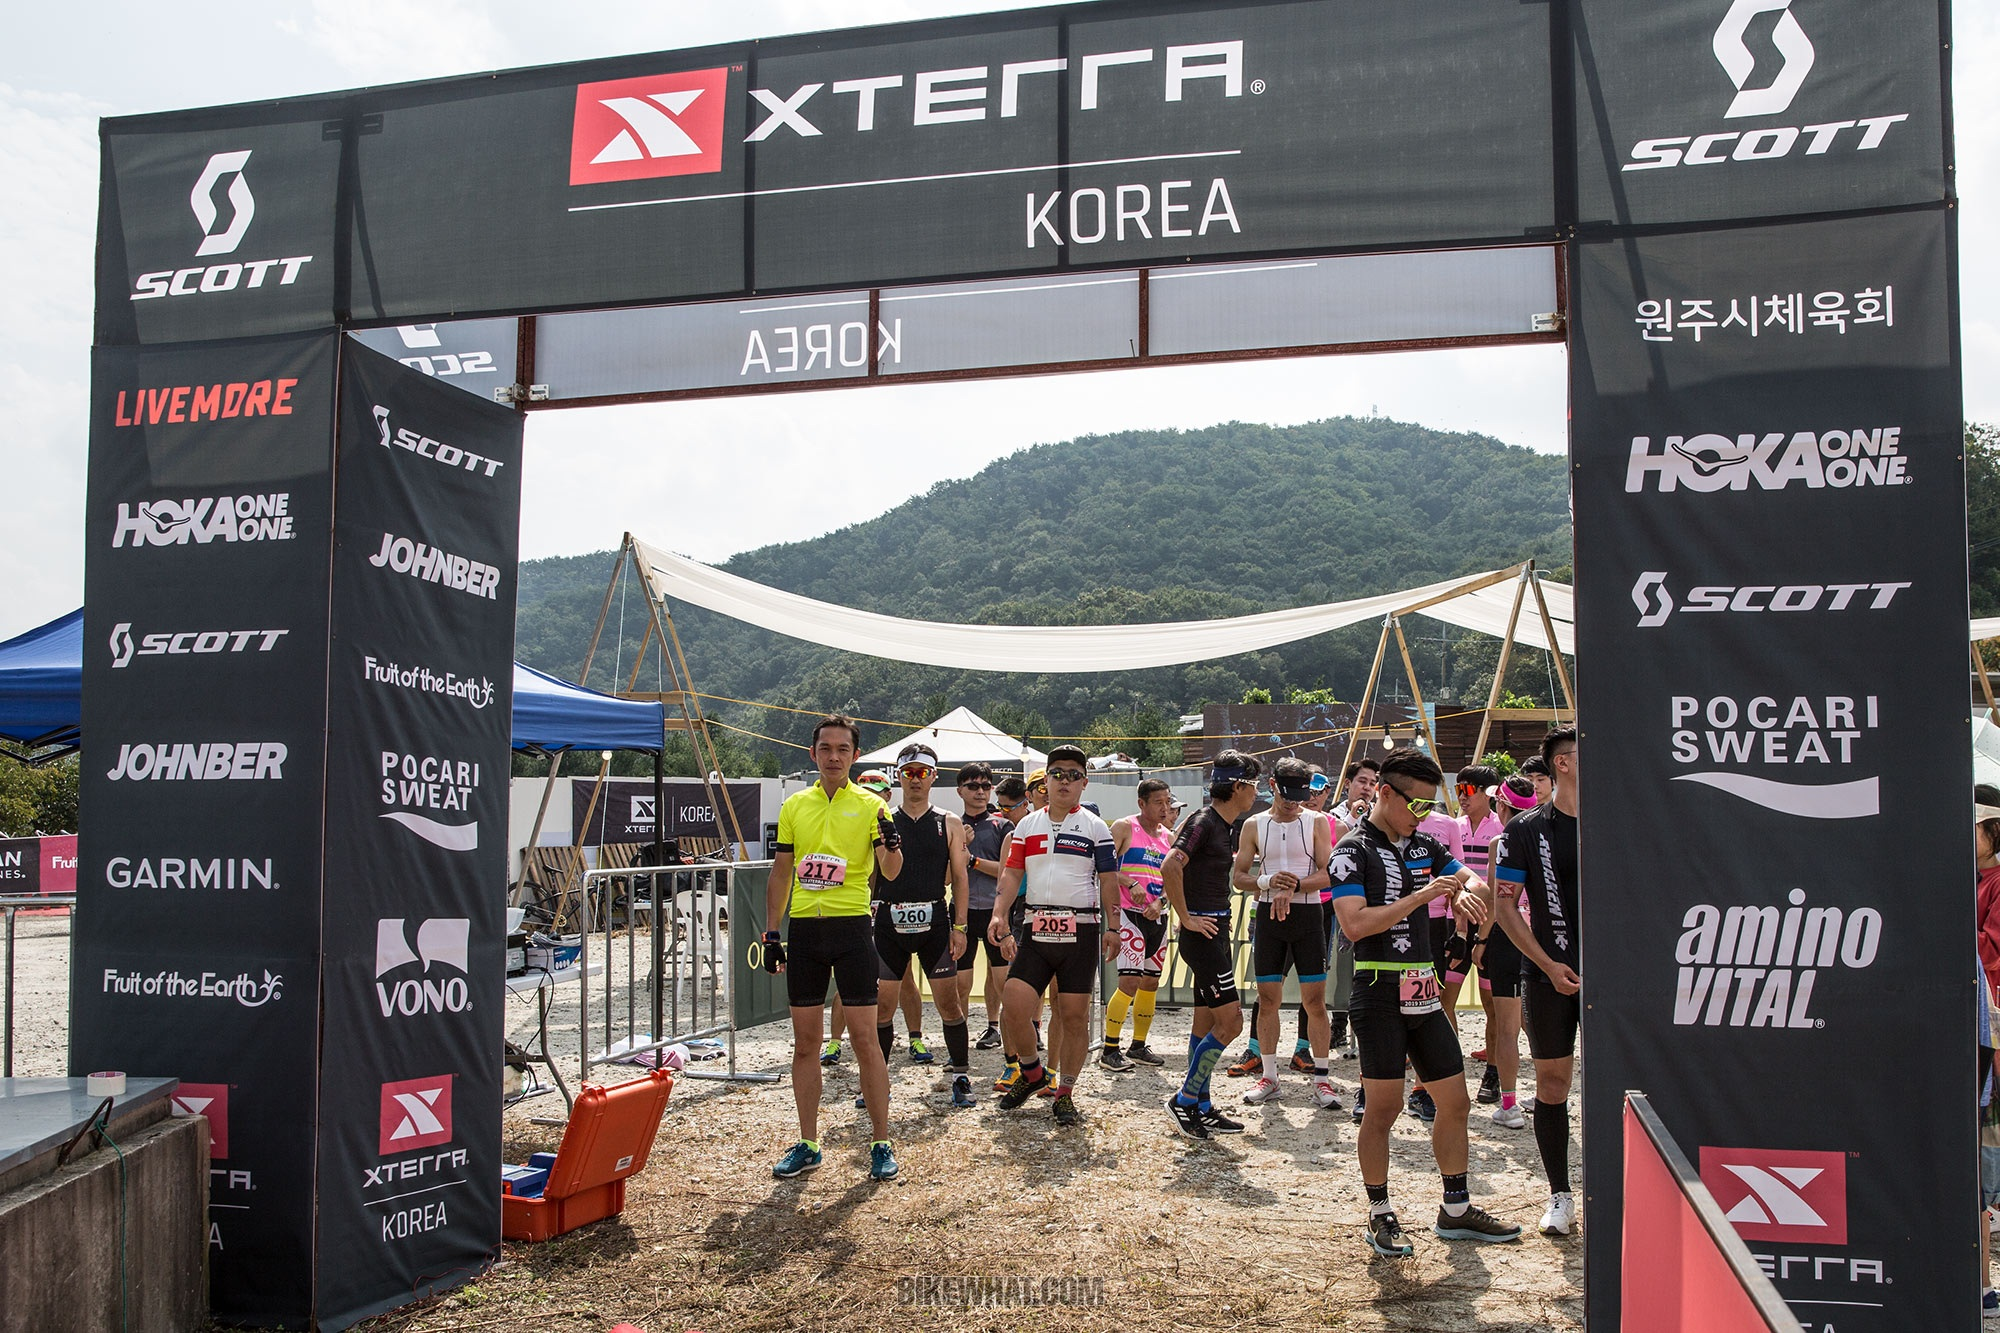 event_2019_SCOTT_XTERRA_1.jpg